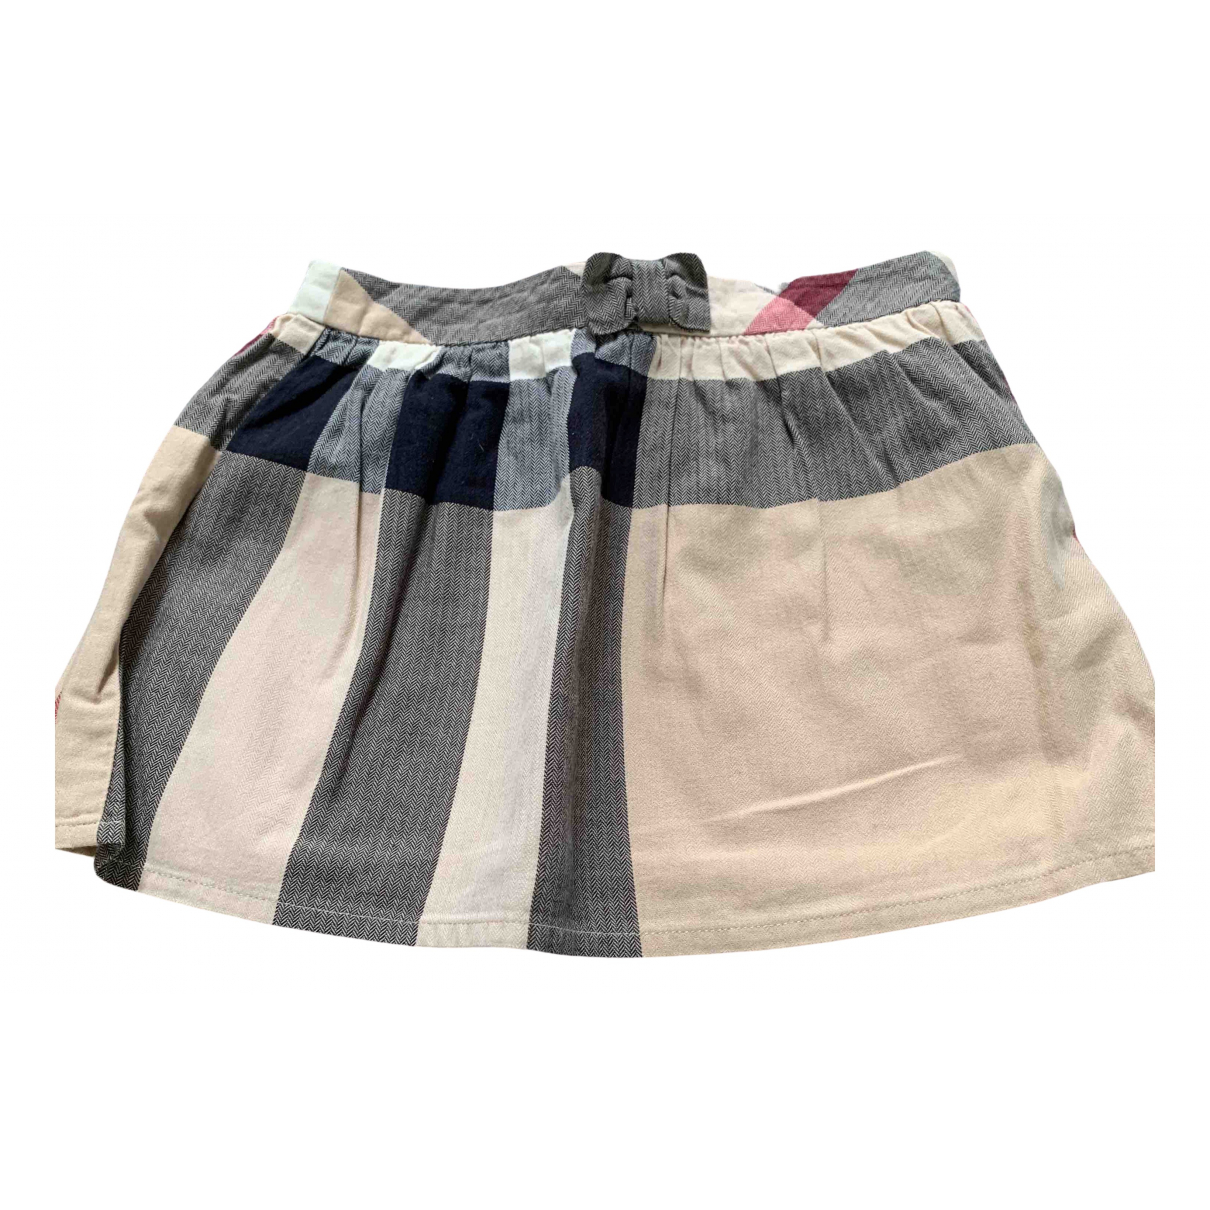 Burberry N Beige Cotton skirt for Kids 2 years - up to 86cm FR